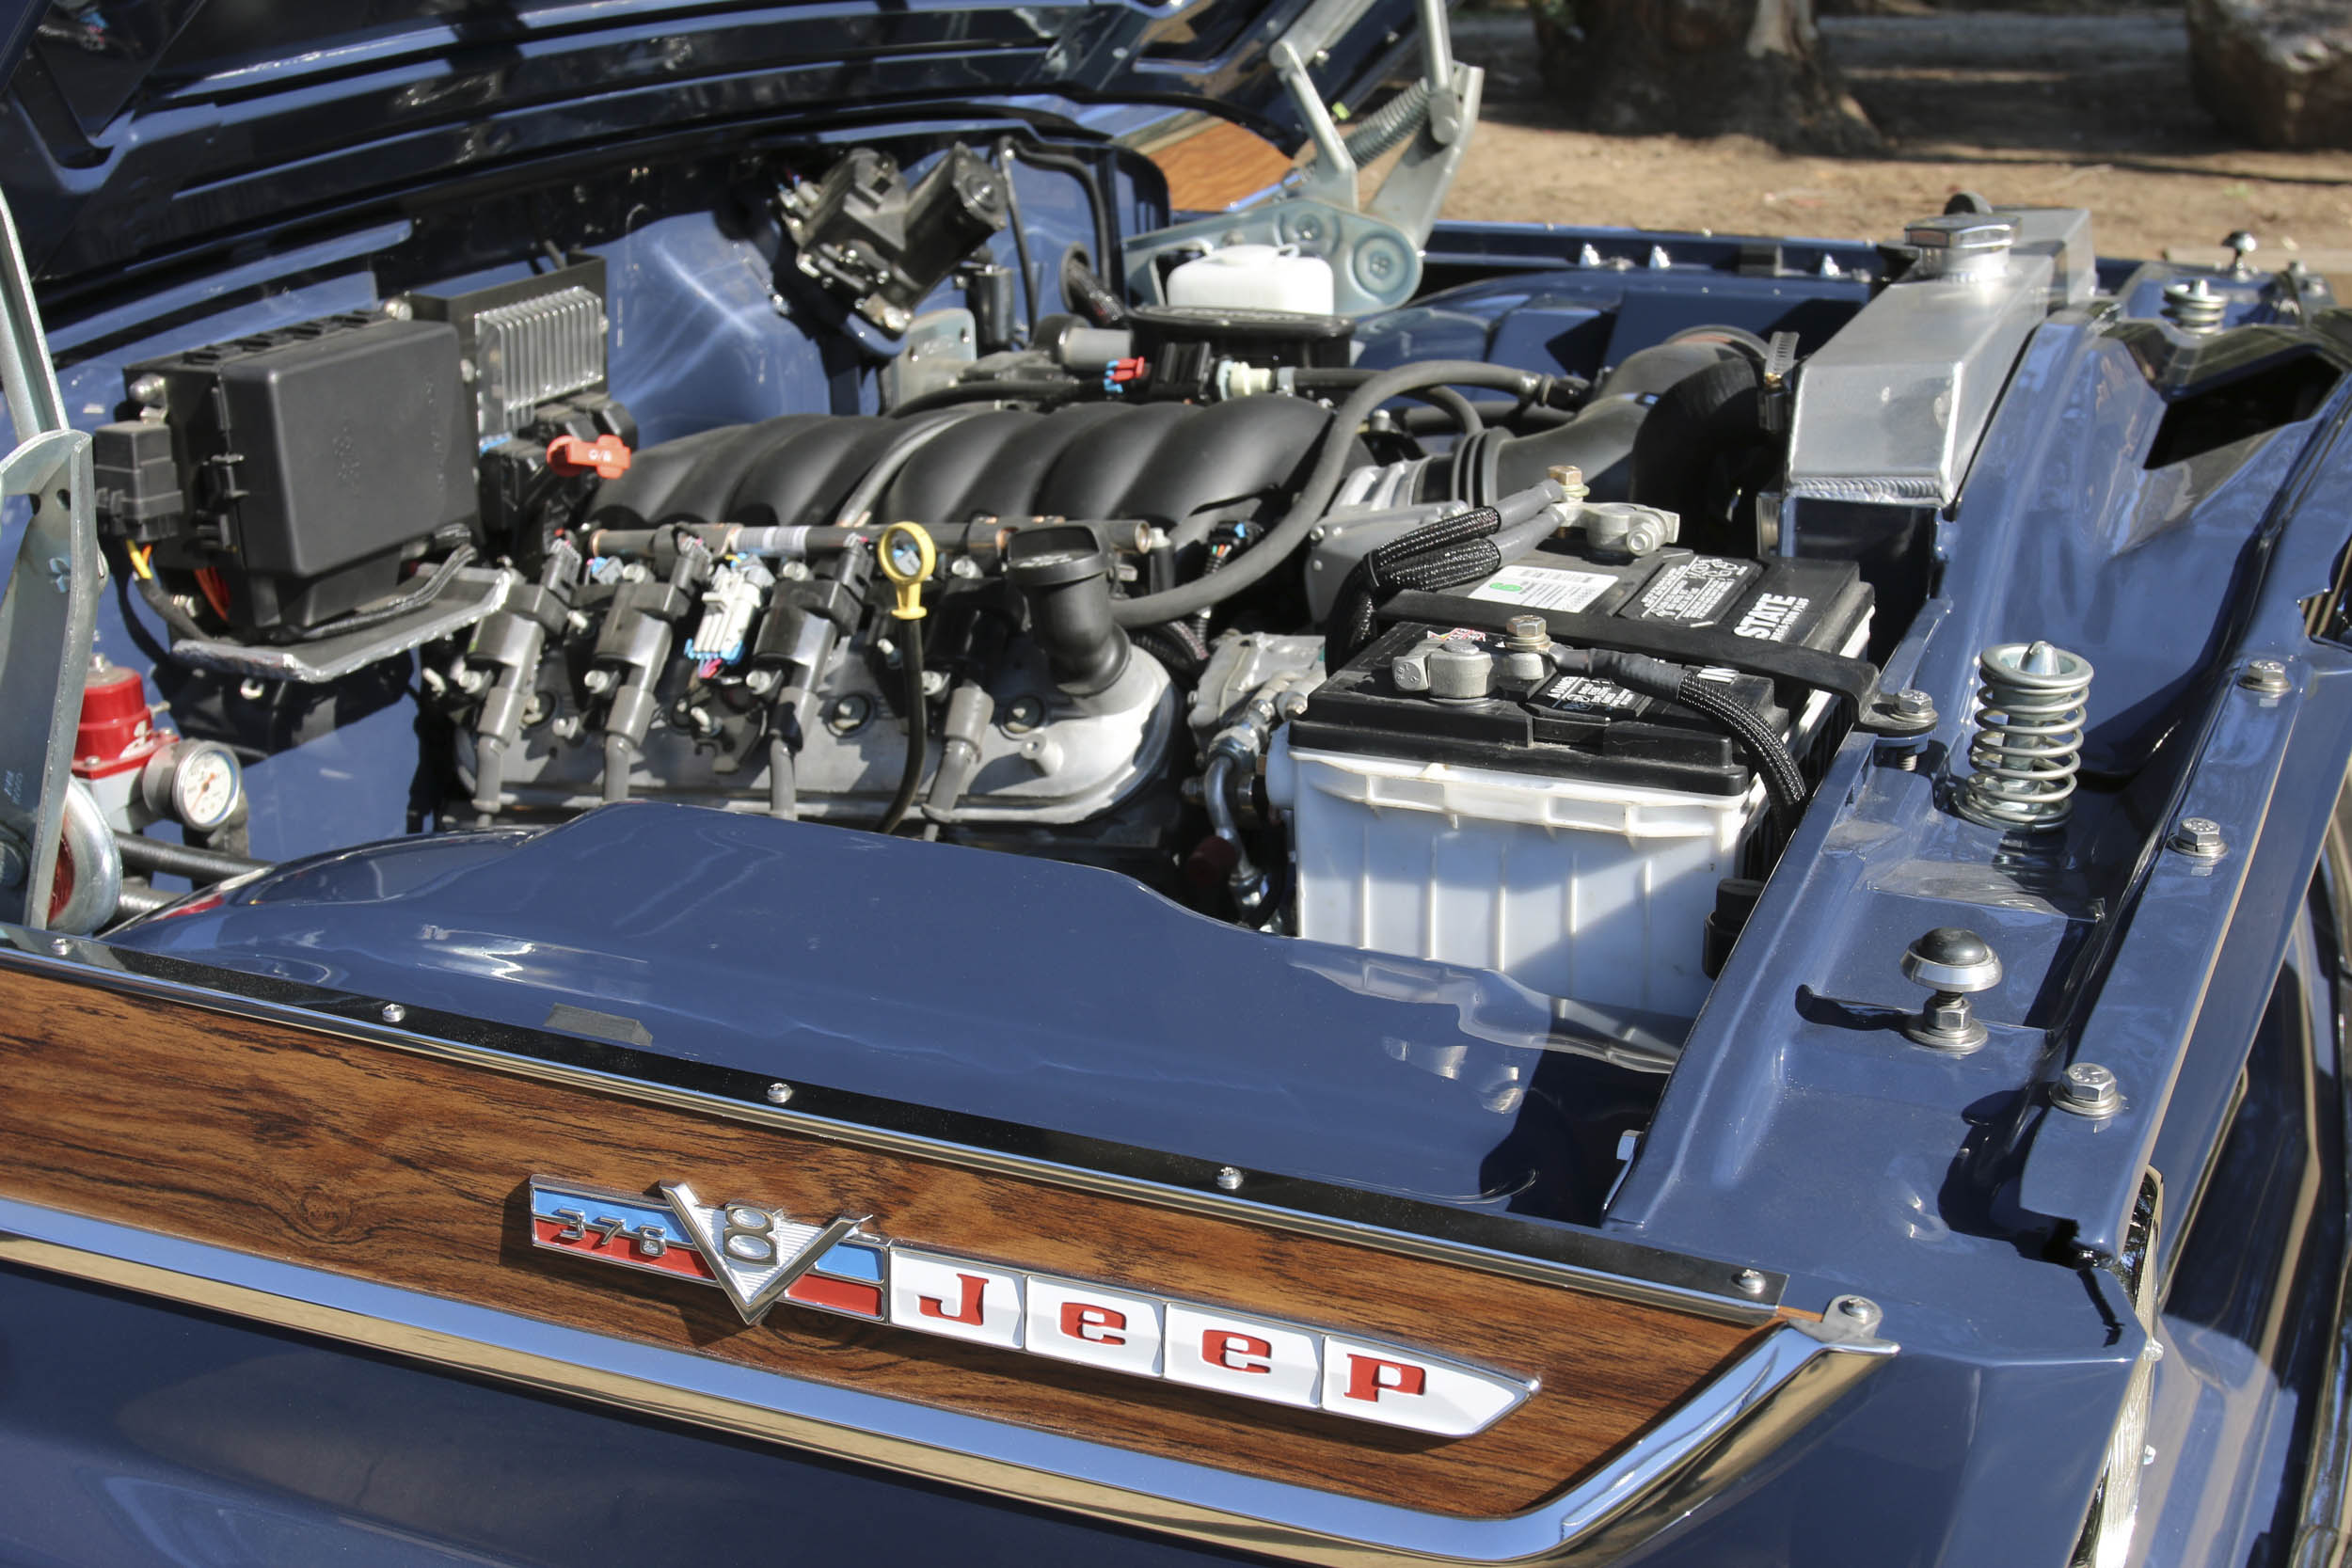 ICON Wagoneer engine